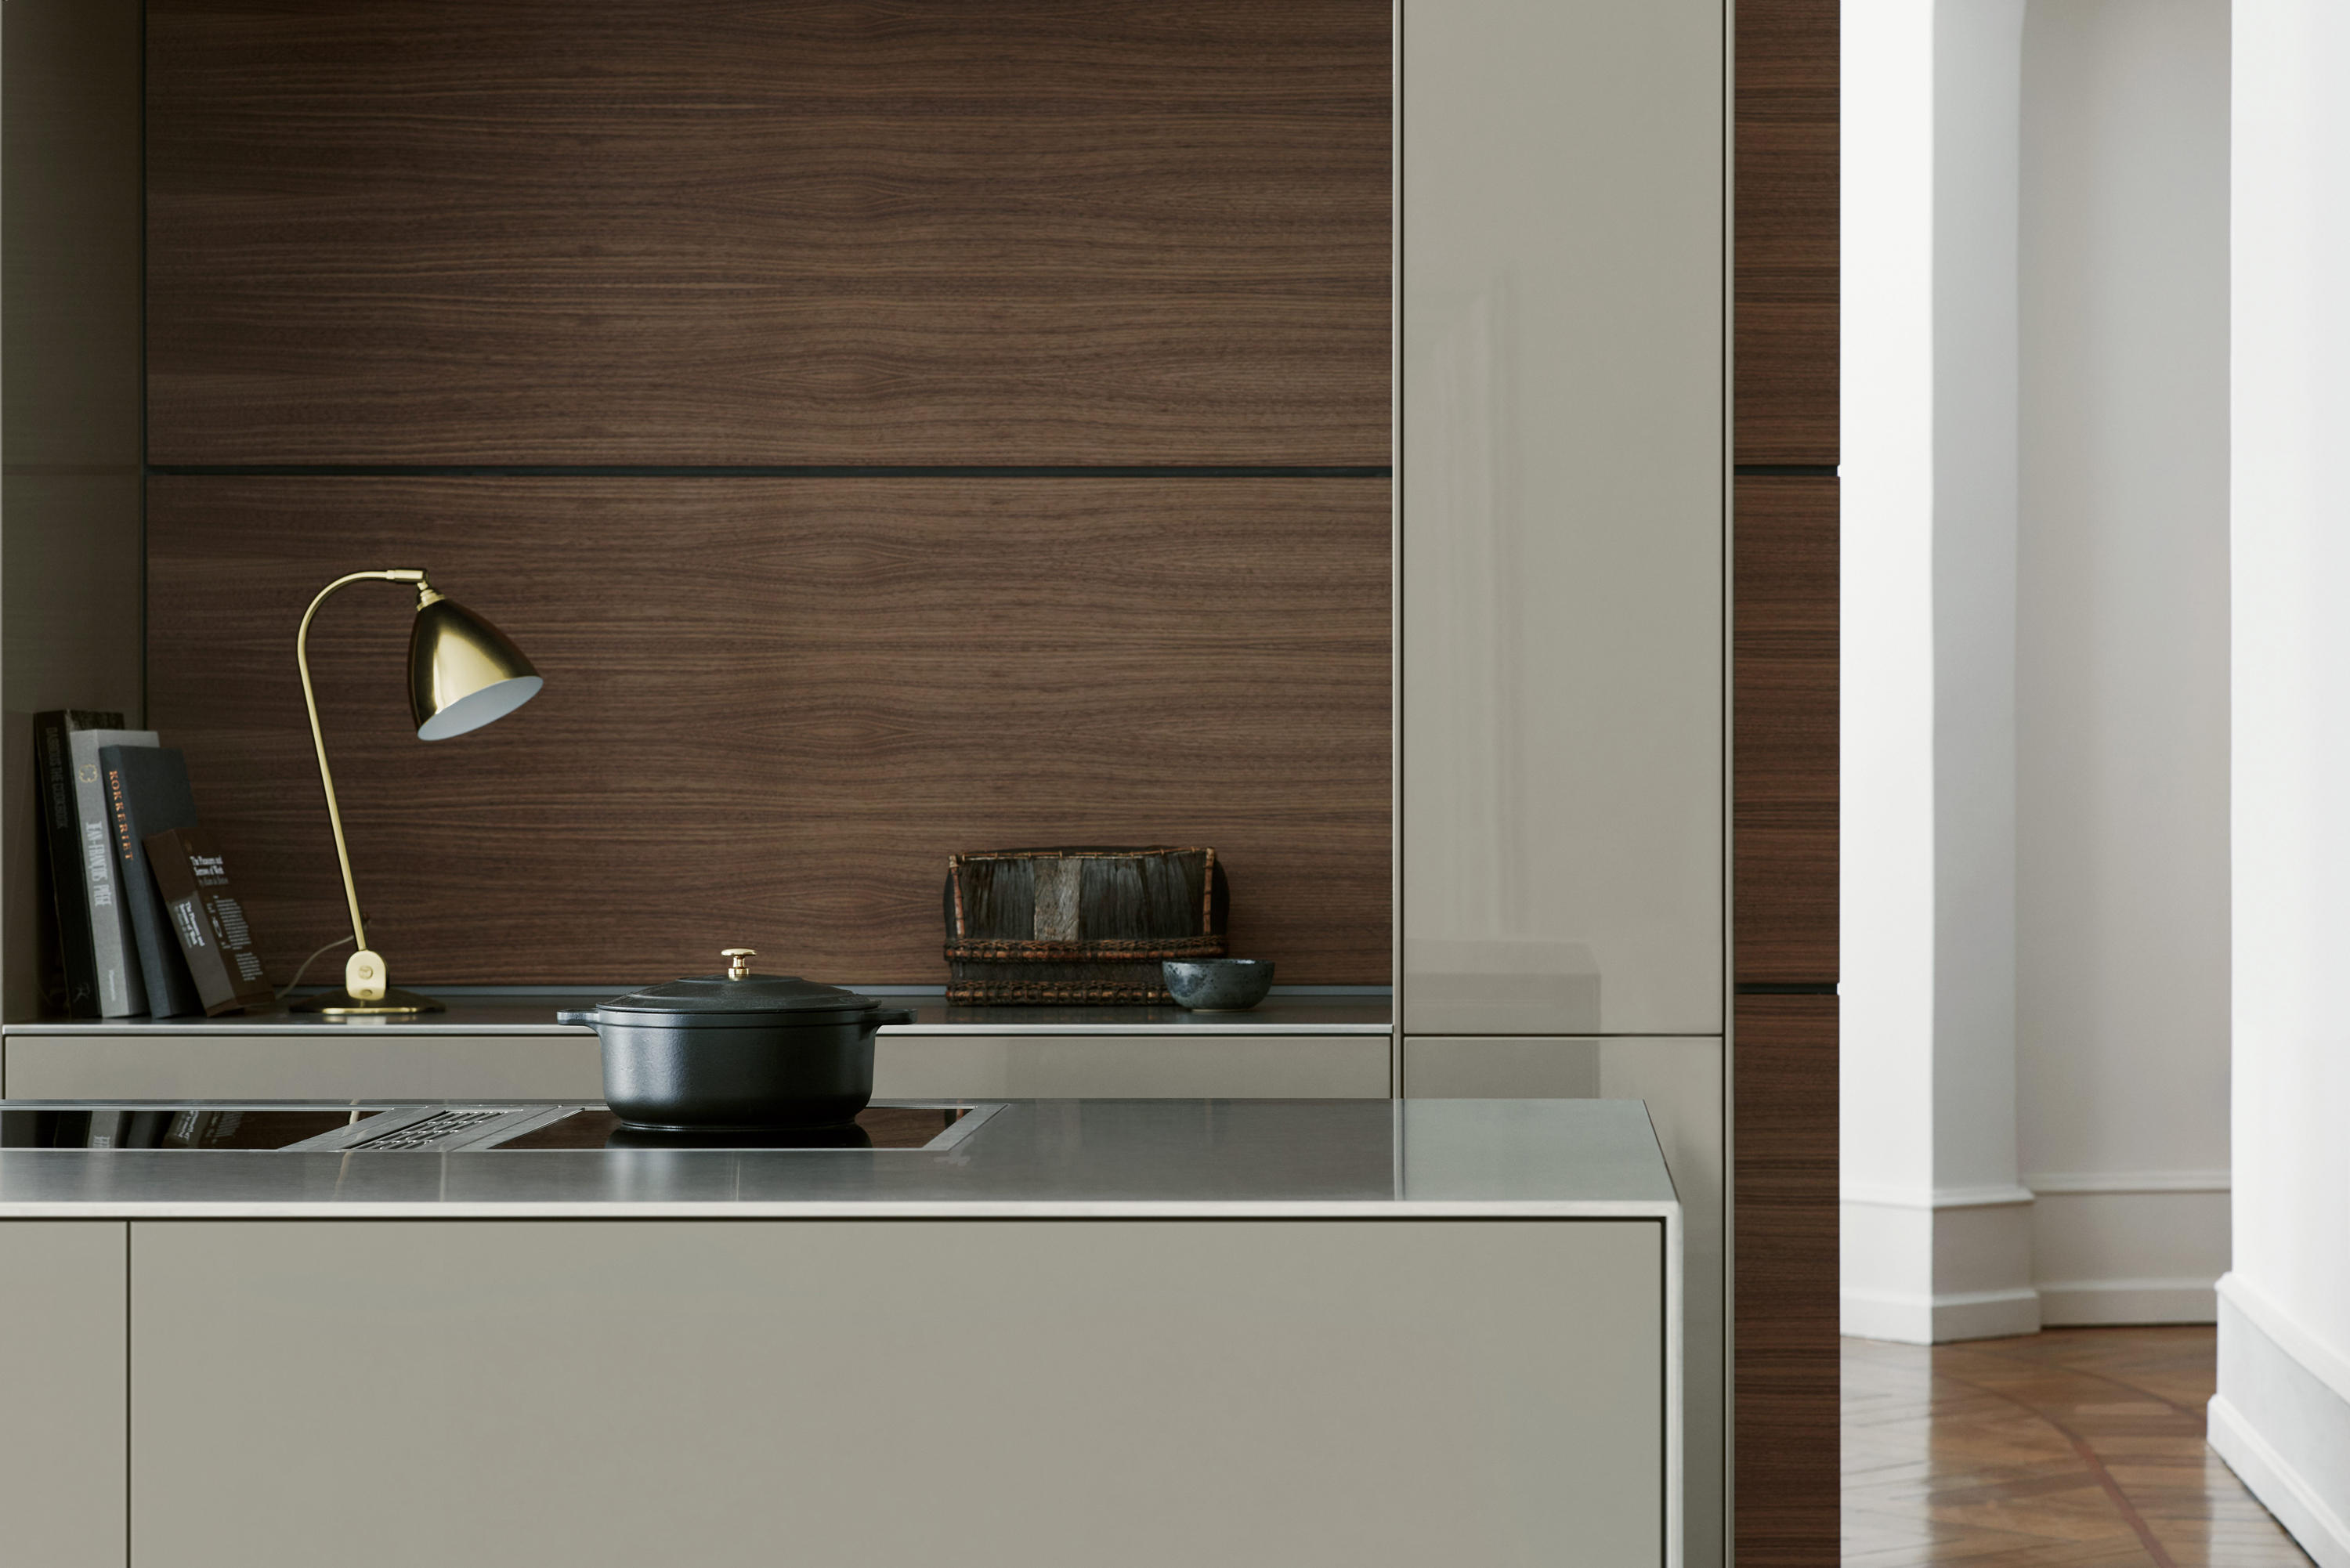 Bulthaup Bodenkirchen B3 Stainless Steel And Aluminum Fitted Kitchens From